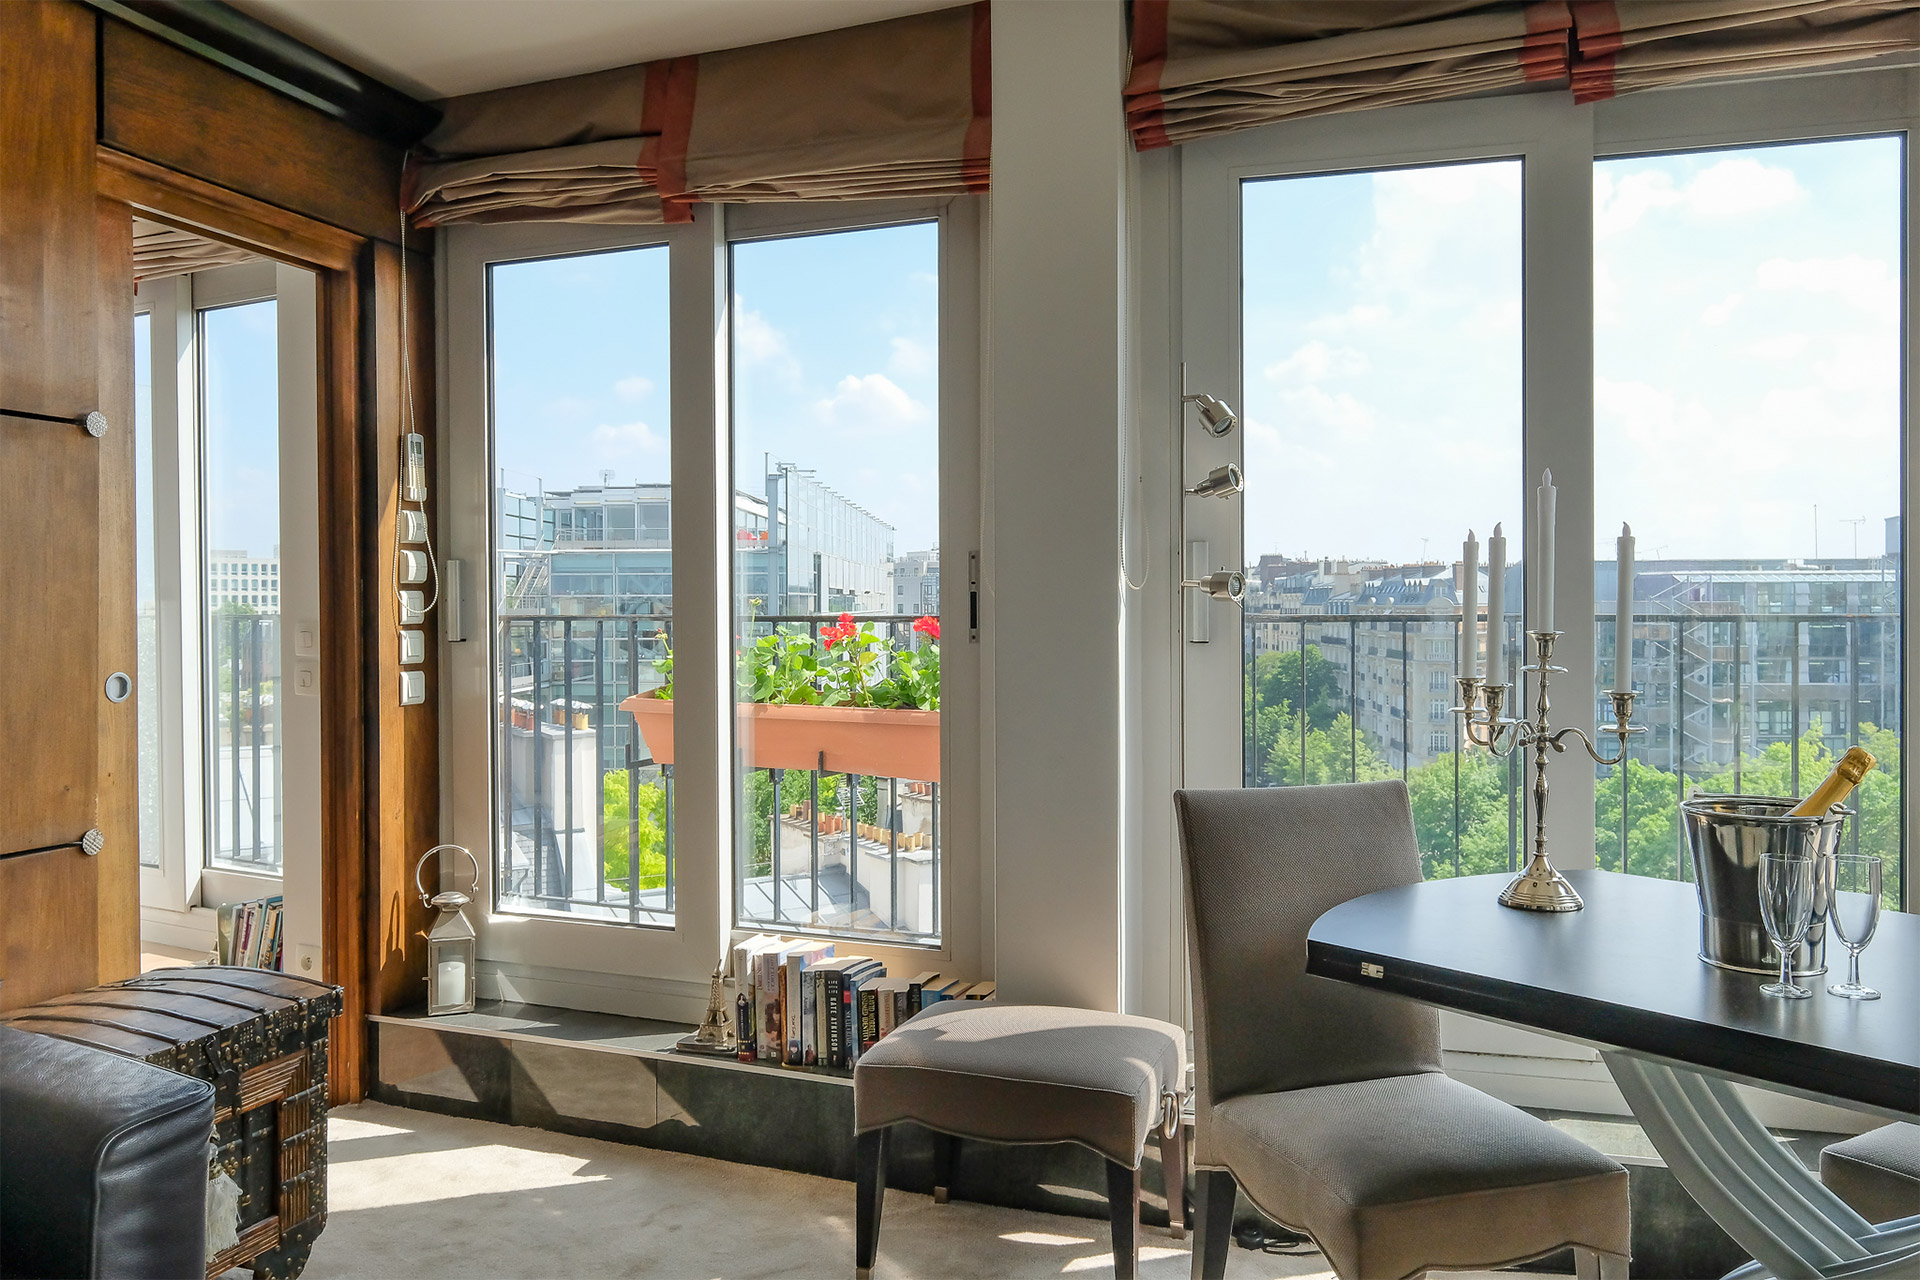 Large windows let in lots of light in the Bordeneuve Paris Perfect rental